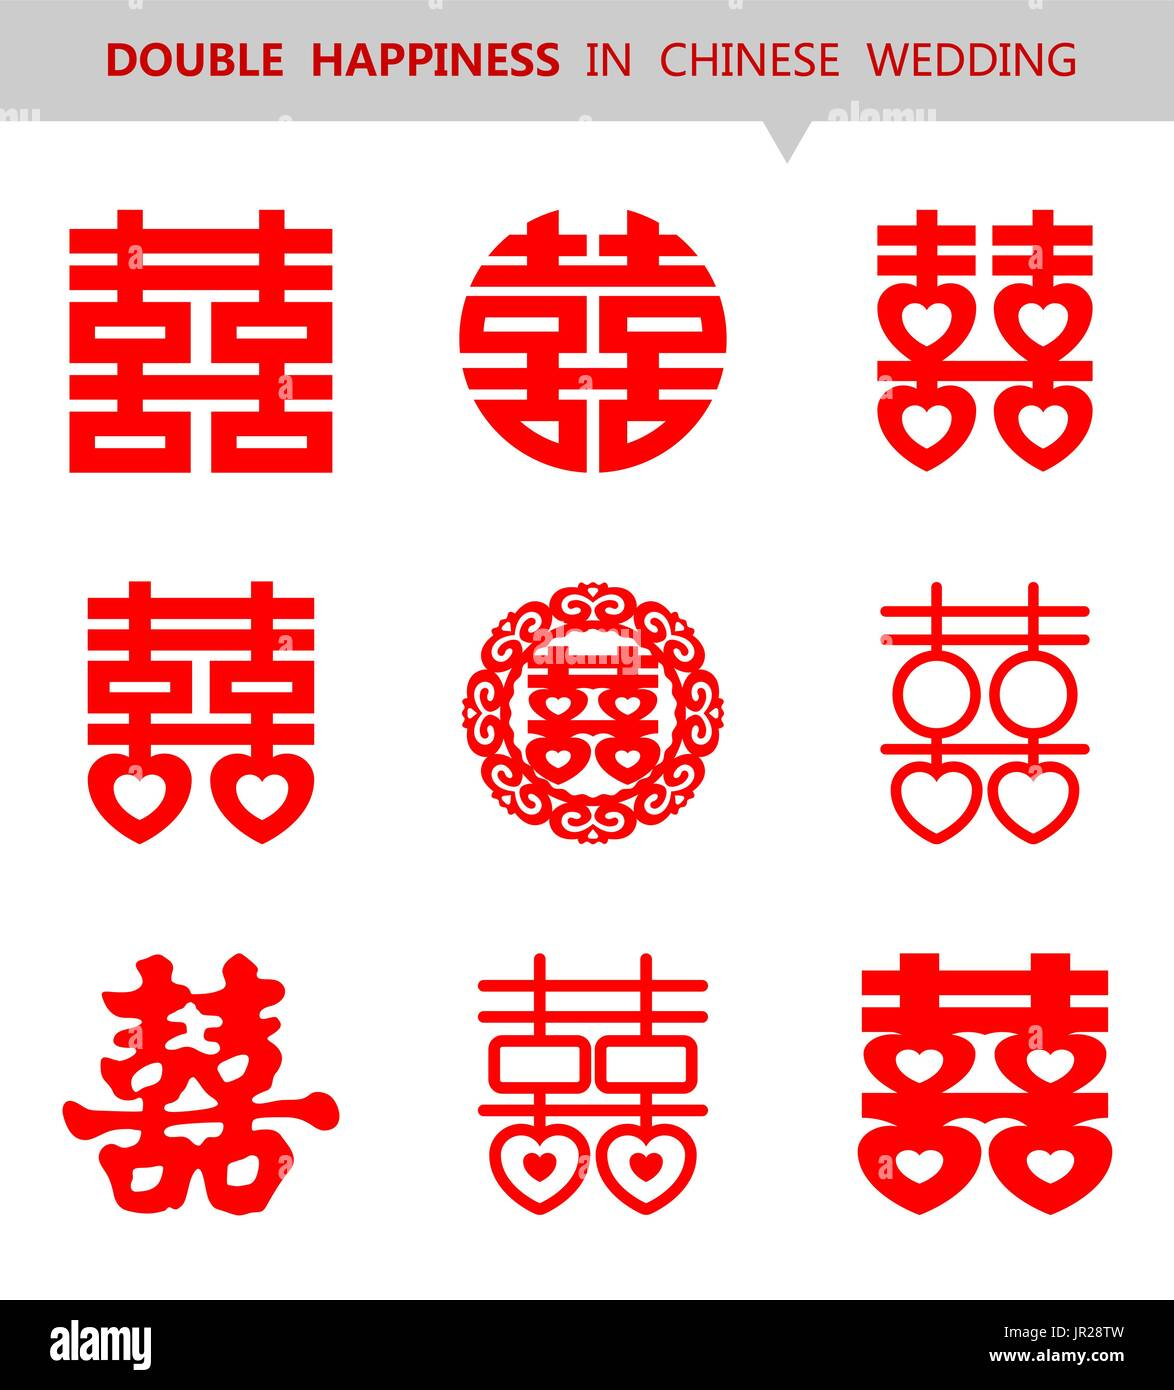 Vector Chinese Double Happiness Symbol Stock Vector Art